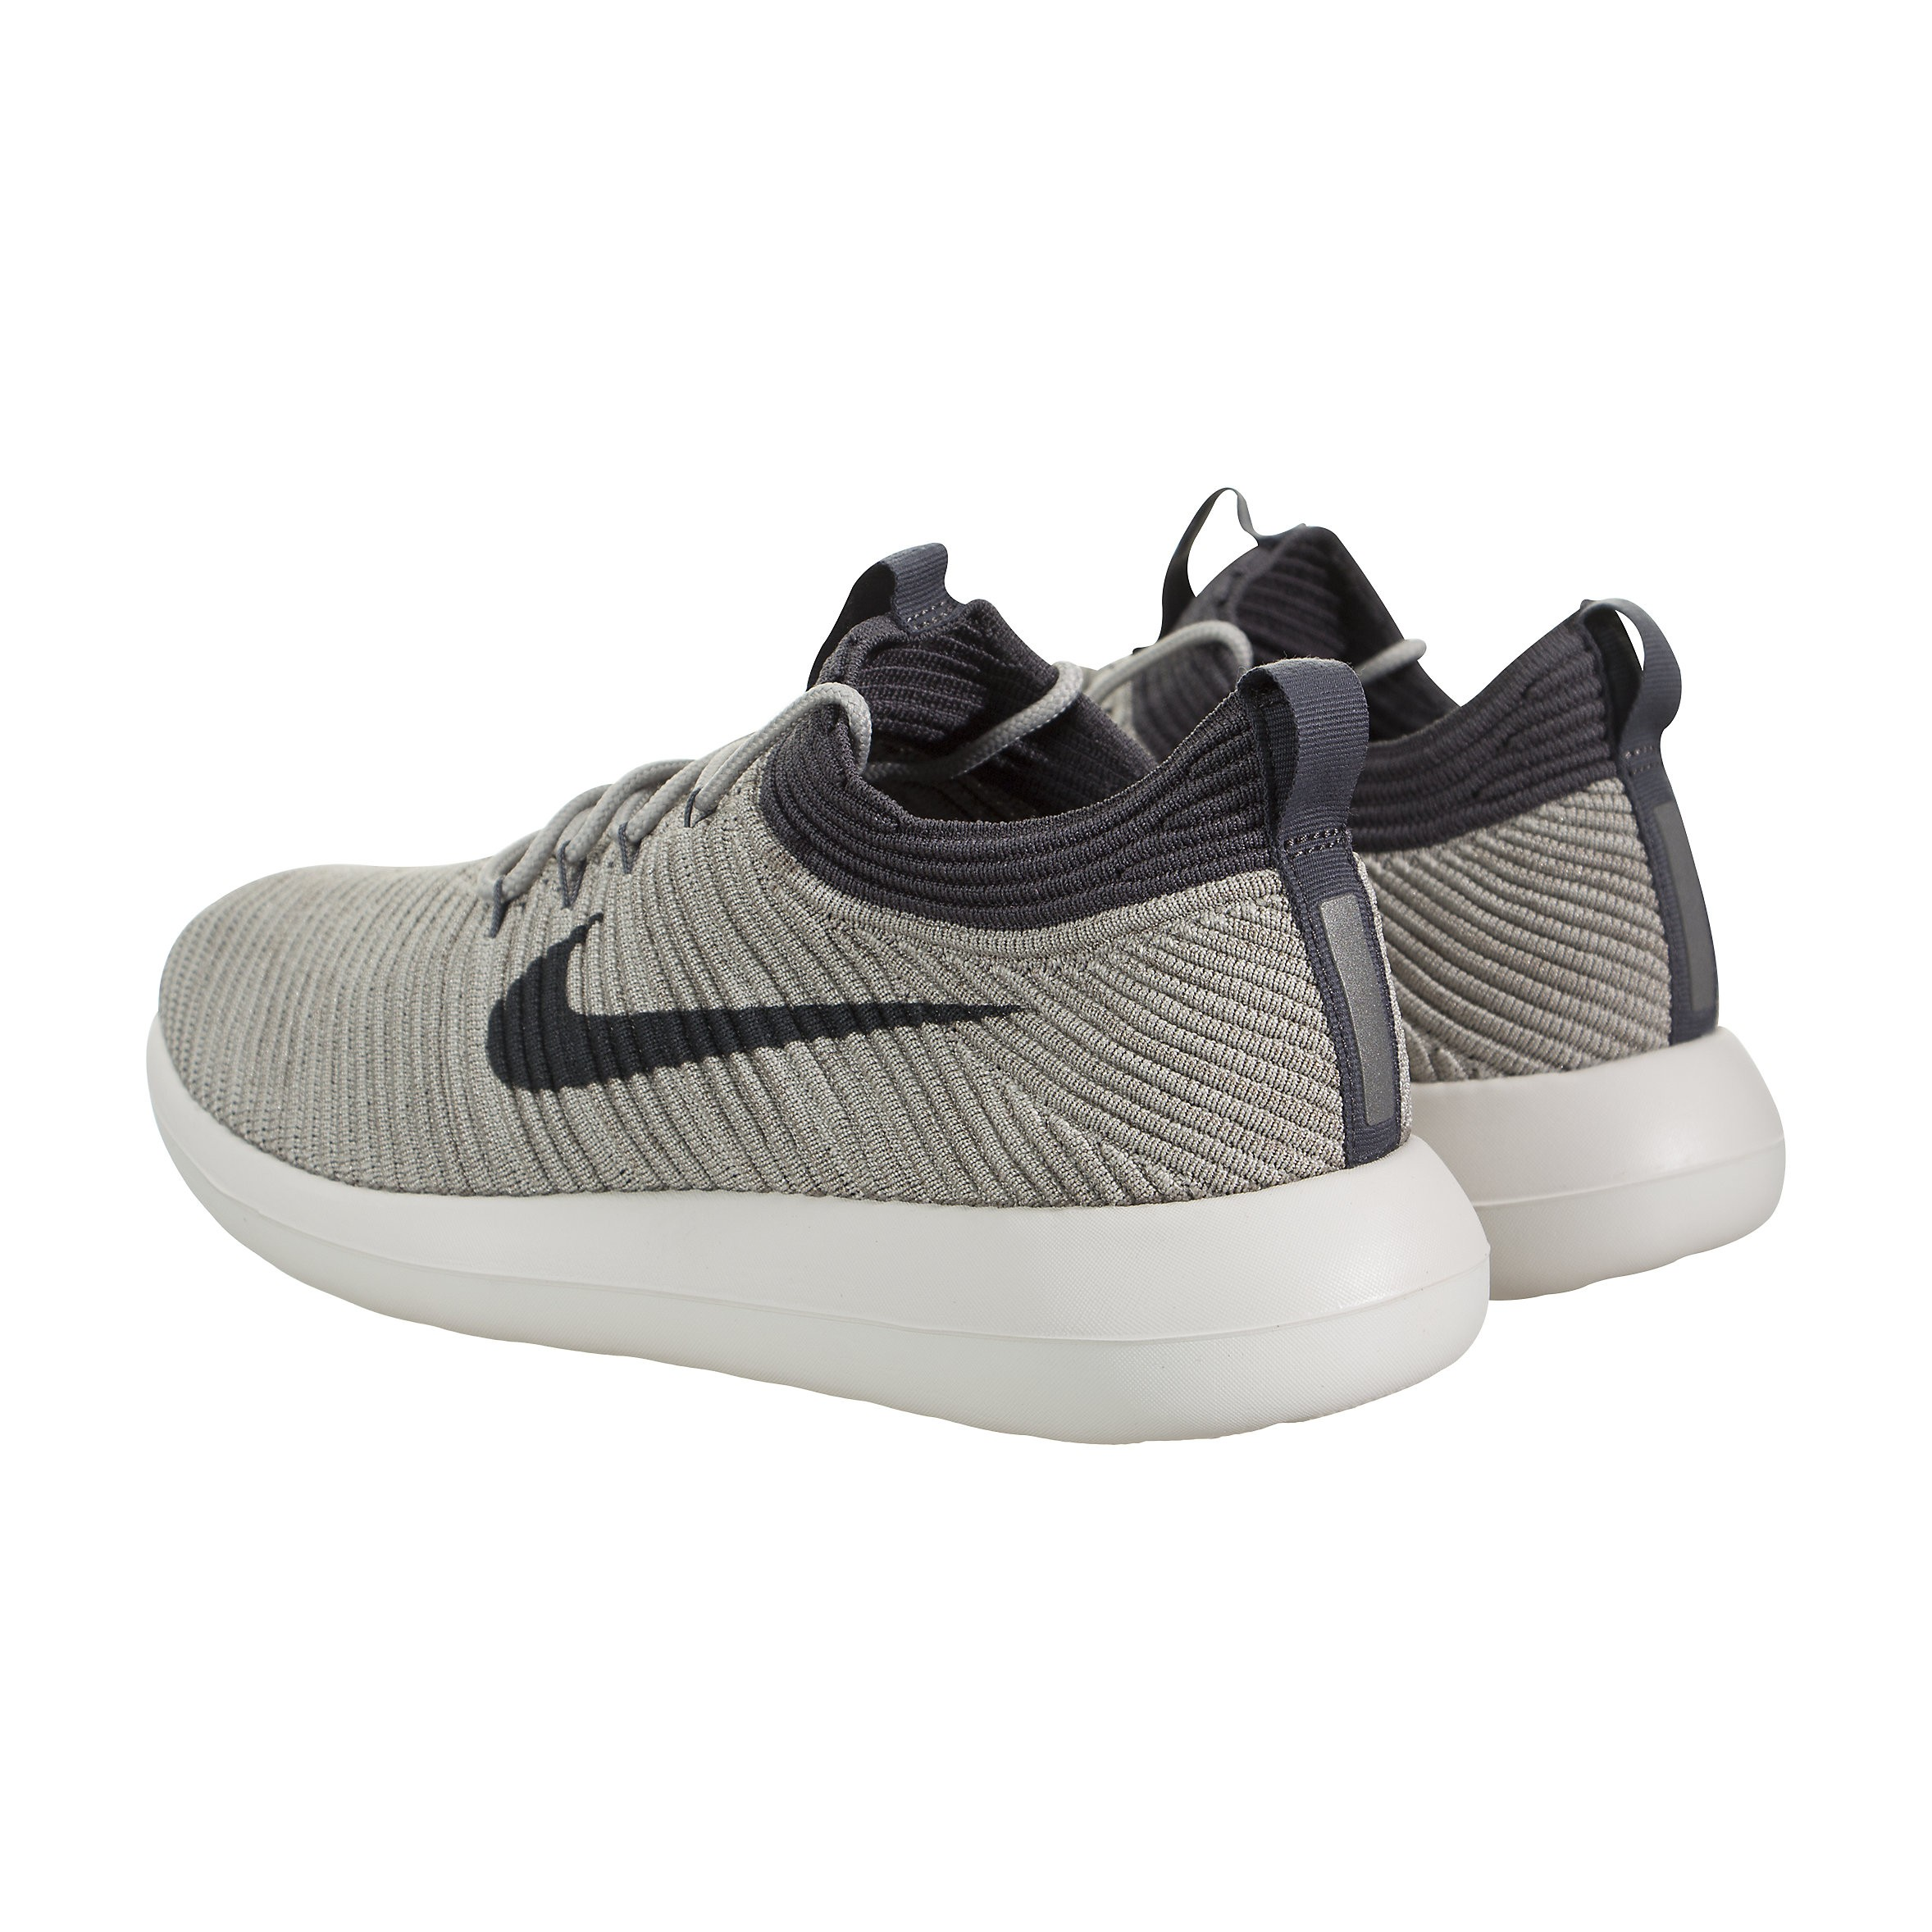 Nike Roshe Two Flyknit V2 Training Pale Grey Women's Running Training V2 Shoes Size 10 bca723